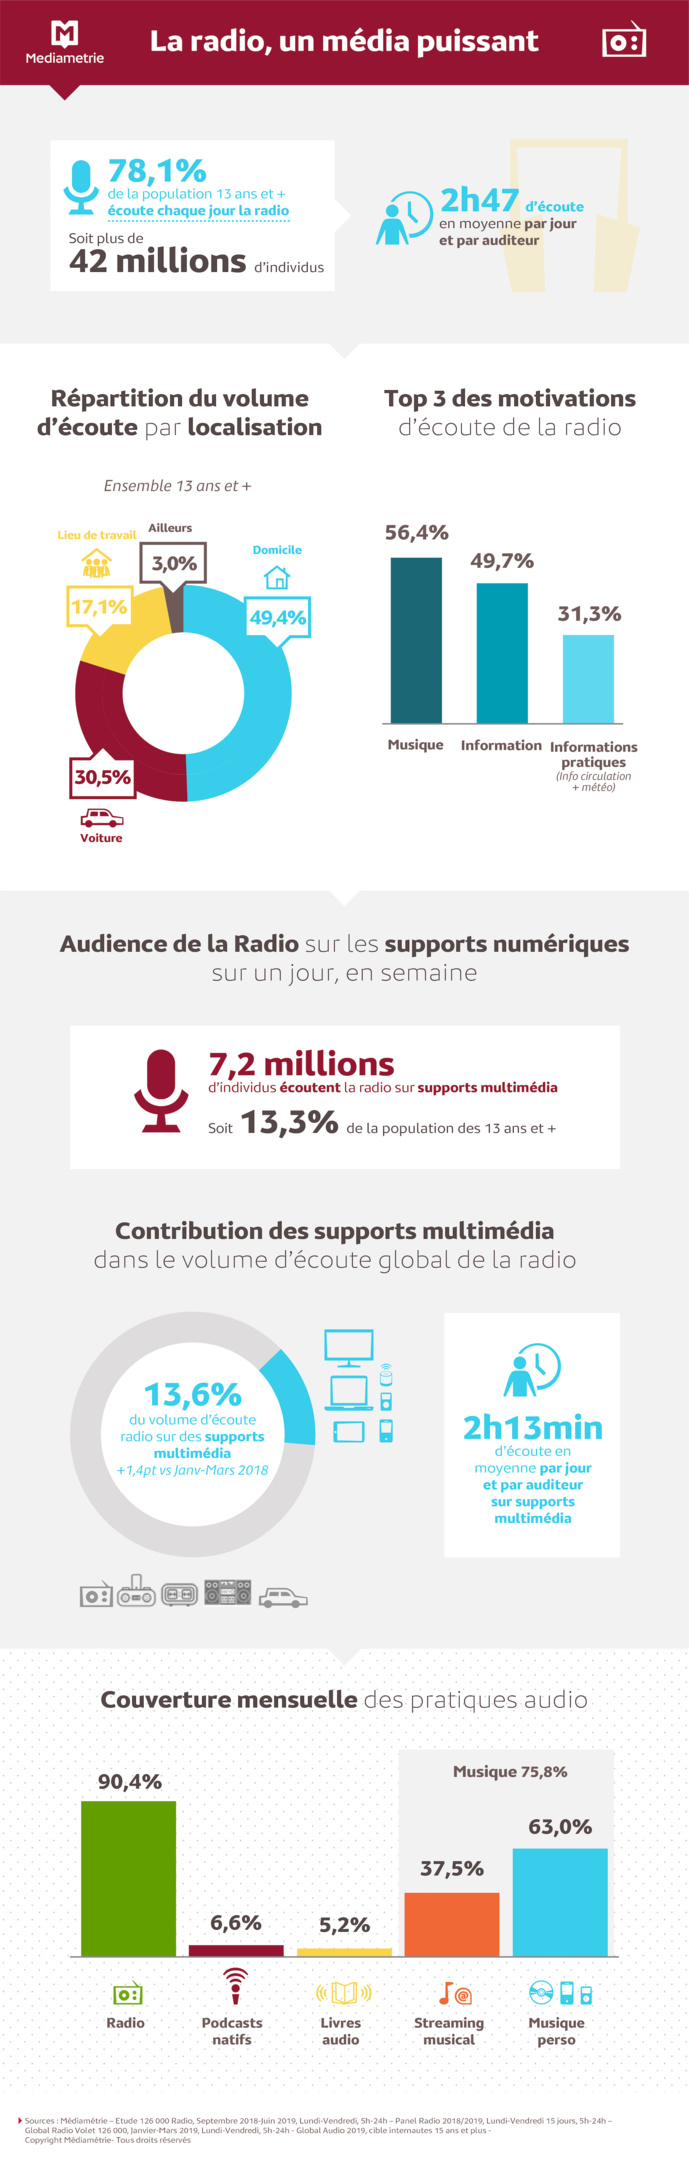 La radio domine le paysage audio